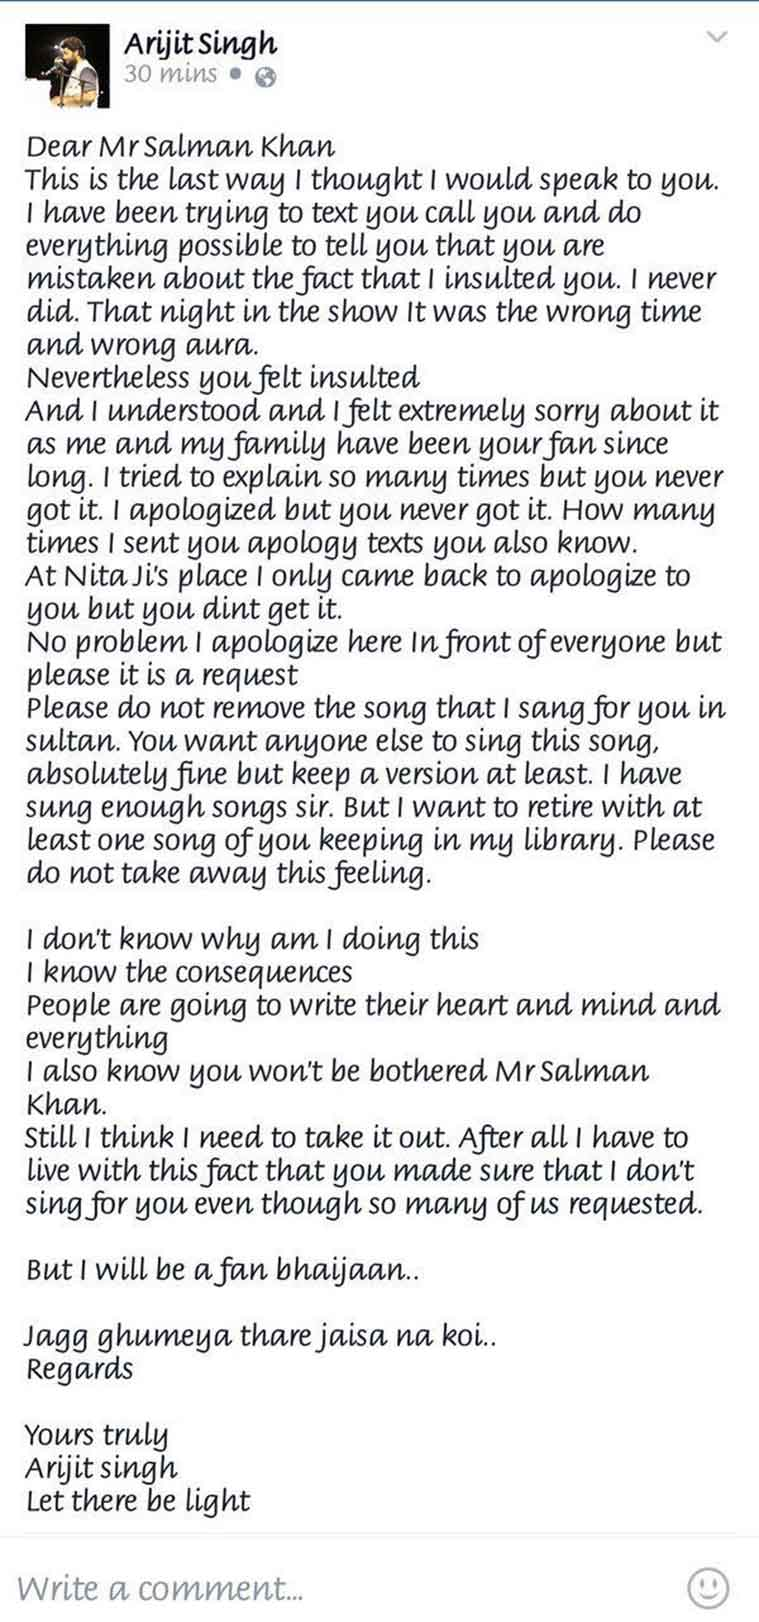 Arijit Singh posts public apology to 'Sultan' Salman Khan, pleading to retain his song; deletes itlater